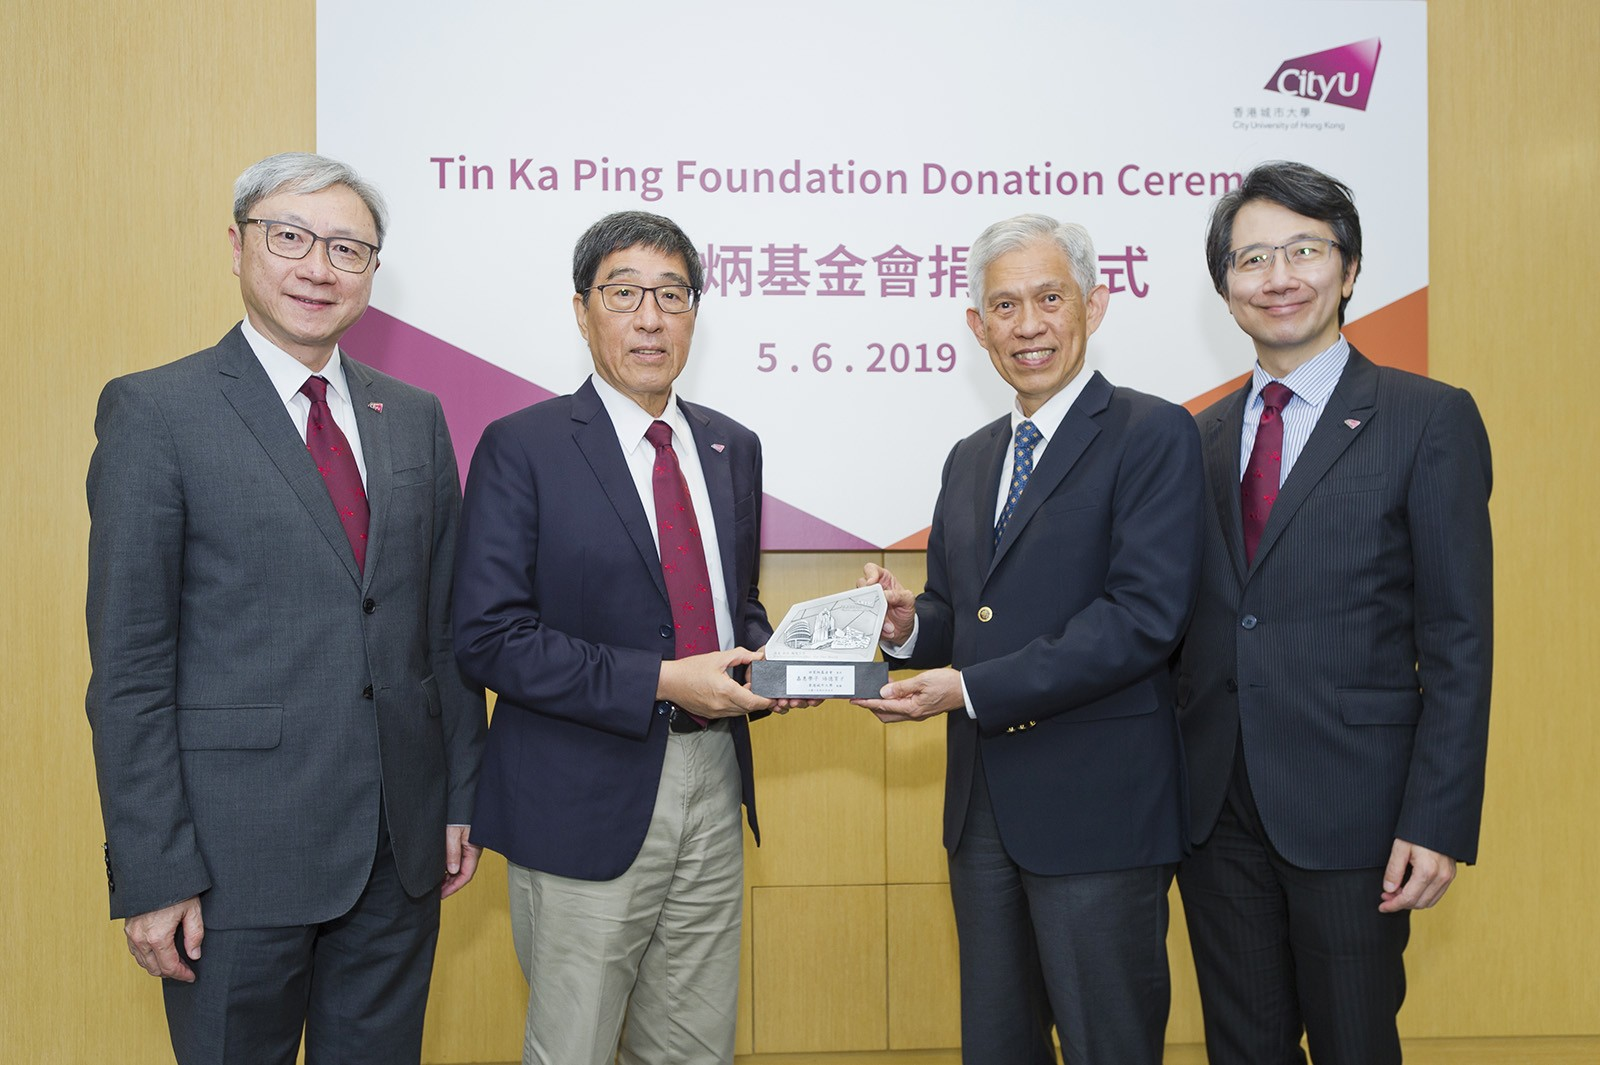 Professor Way Kuo (second from left), CityU President, Professor Matthew Lee Kwok-on (first from right), Vice-President (Development and External Relations), and Professor Horace Ip Ho-shing (first from left), Vice-President (Student Affairs), present a souvenir to Mr Sam Tin Hing-sin, Chairman of the Tin Ka Ping Foundation Board.